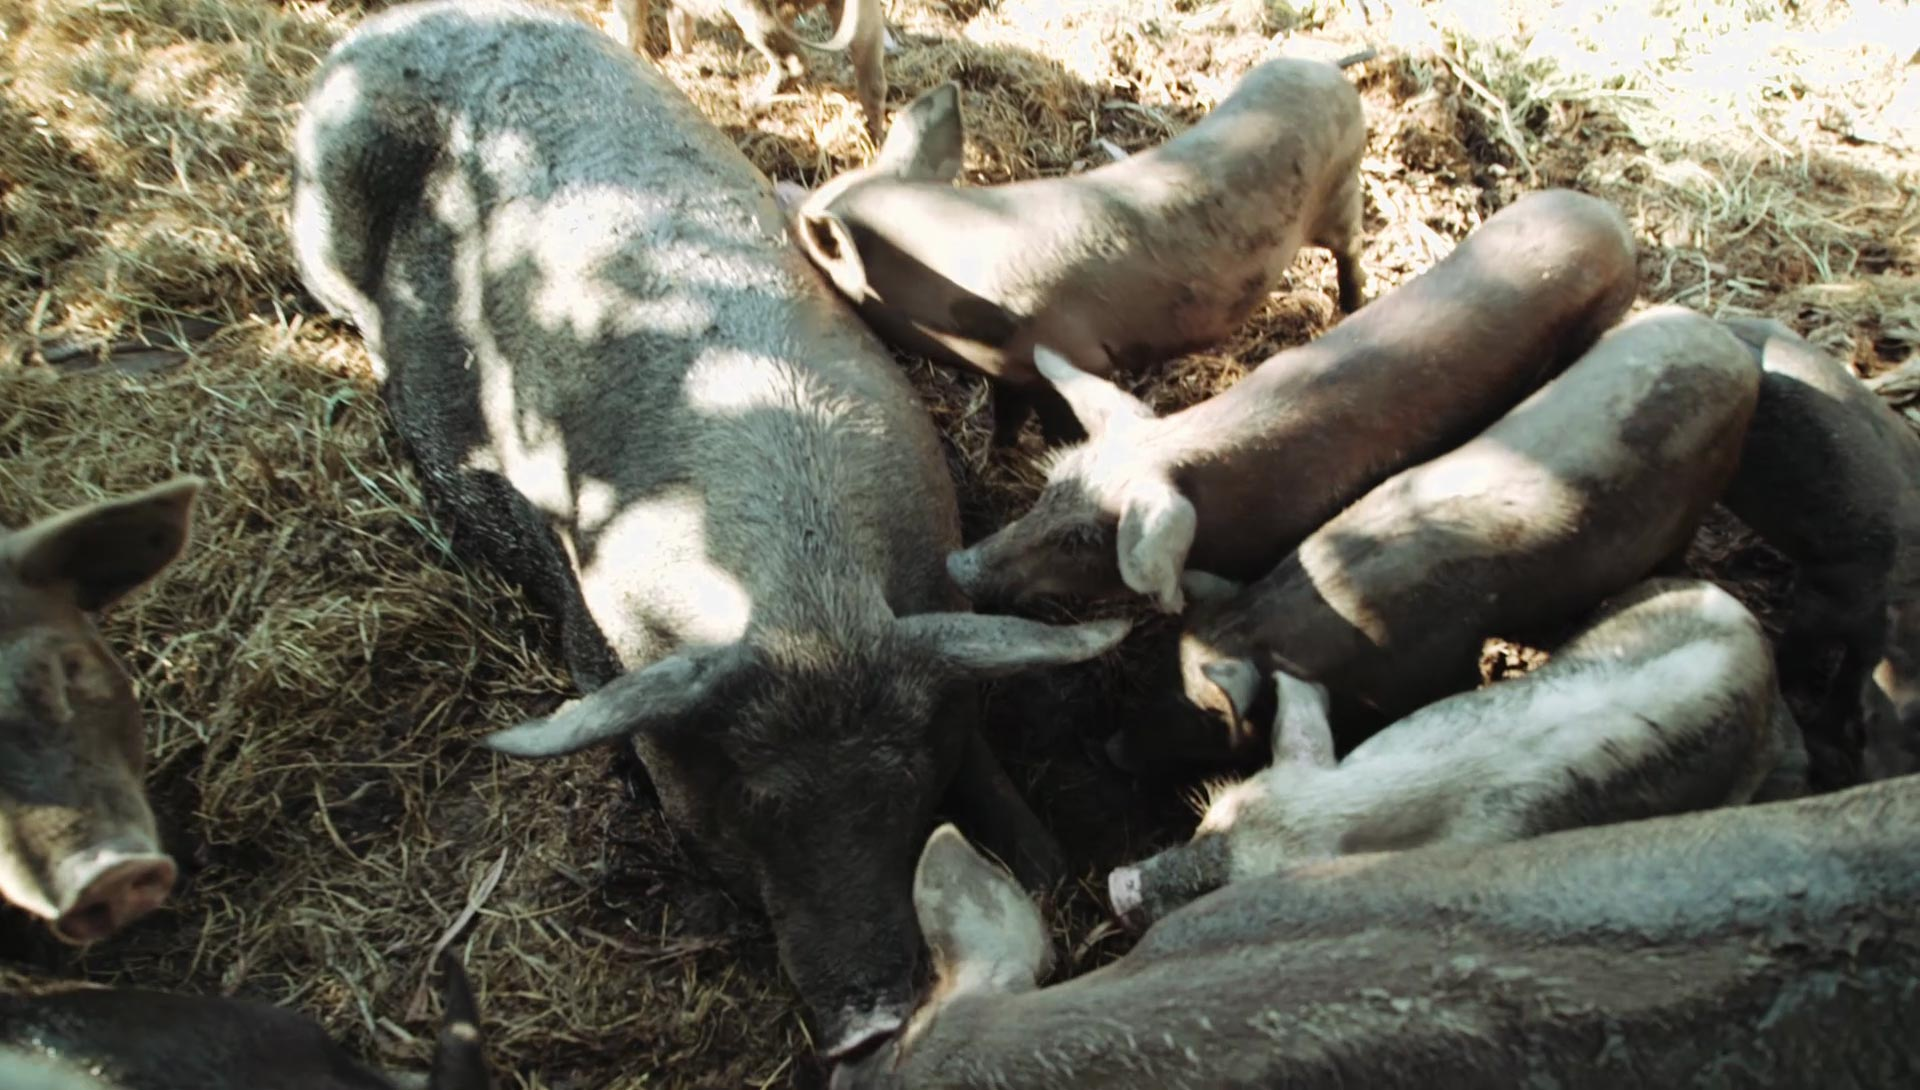 You may see pigs and other integrated animal systems during your permaculture course in Thailand